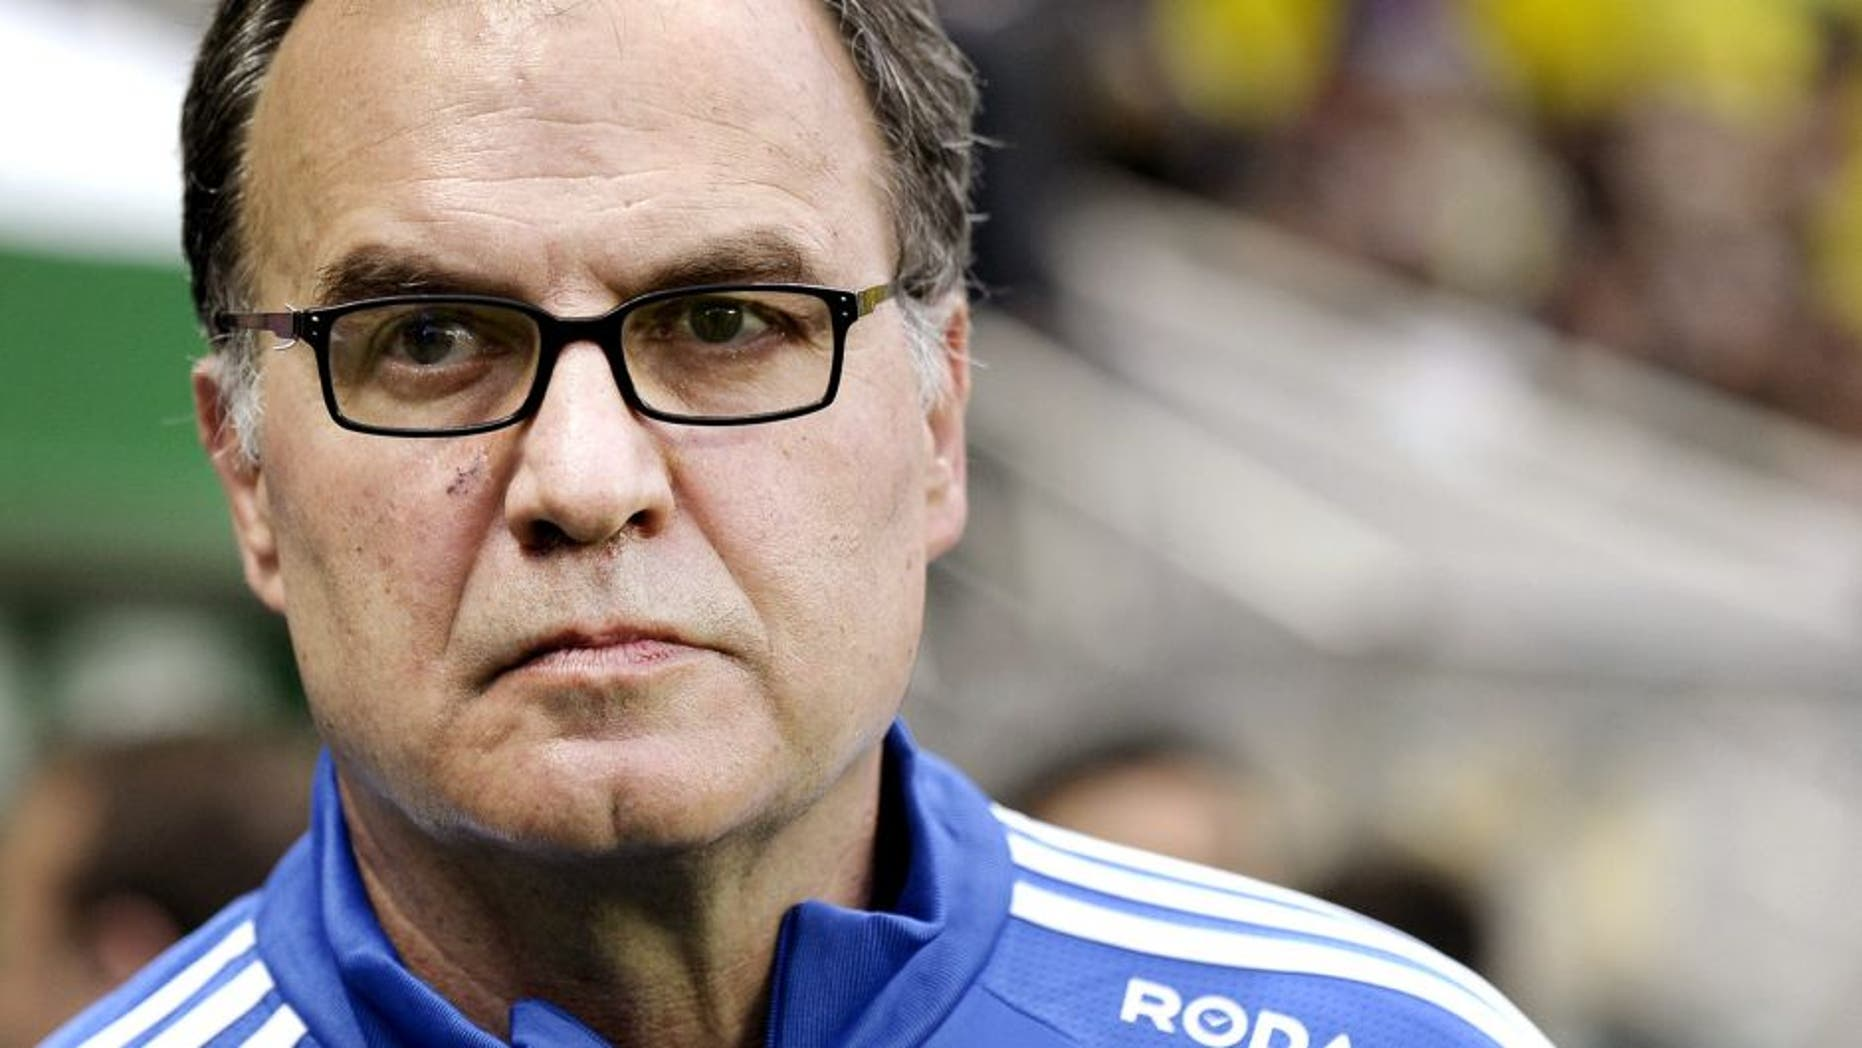 Marseille's Argentinian head coach Marcelo Bielsa looks on during the French L1 football match between Nantes and Marseille on April 17, 2015 at the Beaujoire stadium in Nantes, western France. AFP PHOTO / JEAN-SEBASTIEN EVRARD (Photo credit should read JEAN-SEBASTIEN EVRARD/AFP/Getty Images)